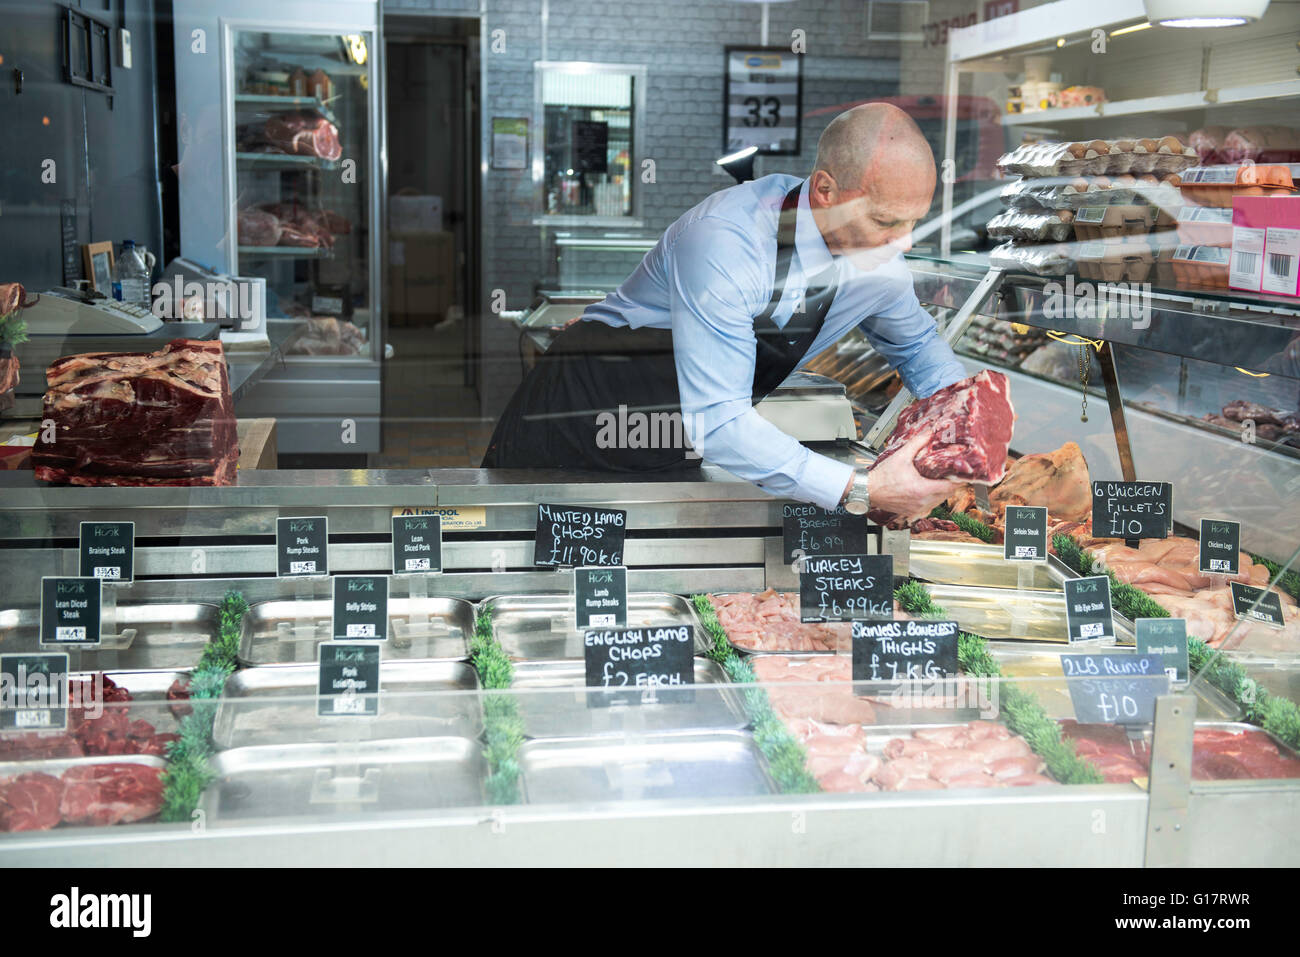 Butcher preparing window display in butcher's shop Stock Photo